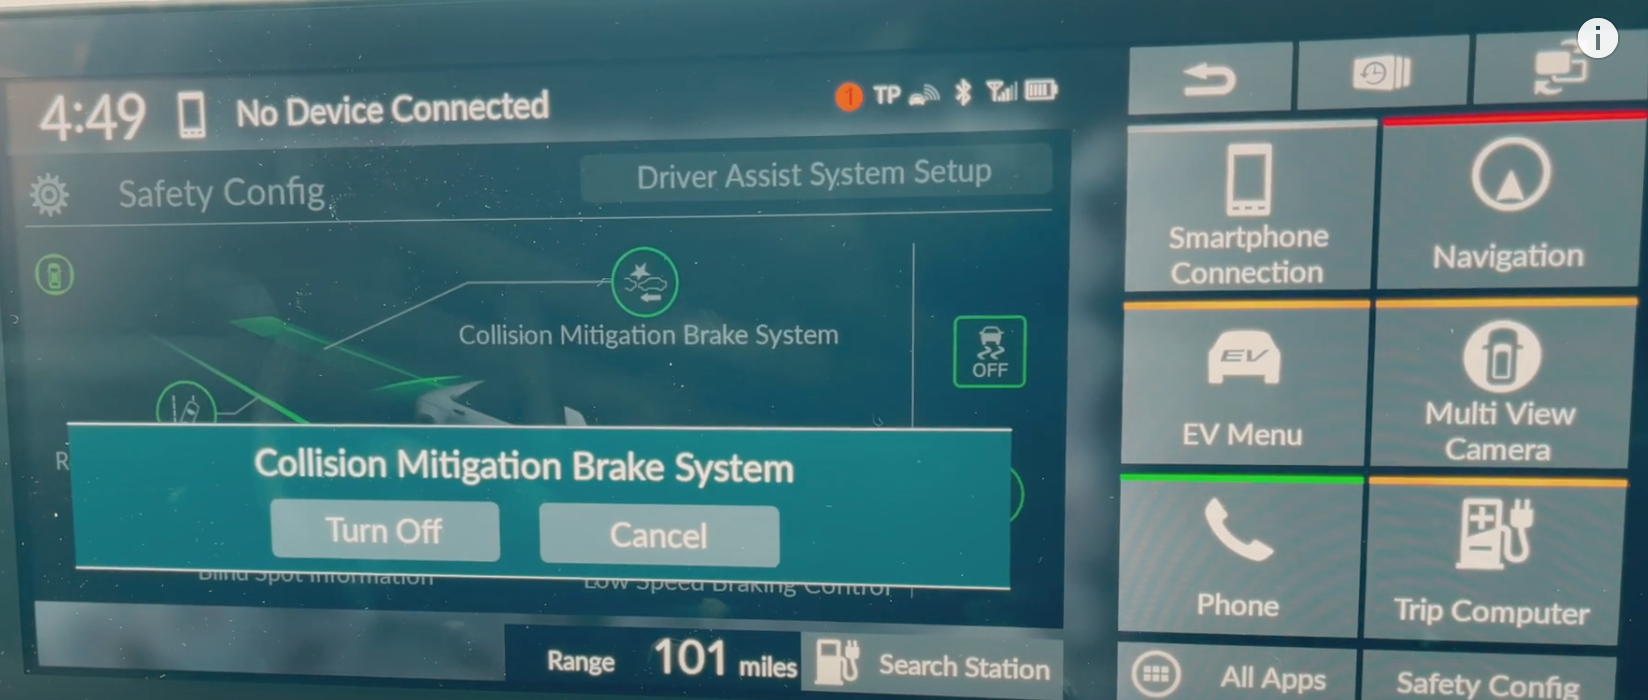 Two digital buttons to chose from to set up collision mitigation brake system to turn off or cancel